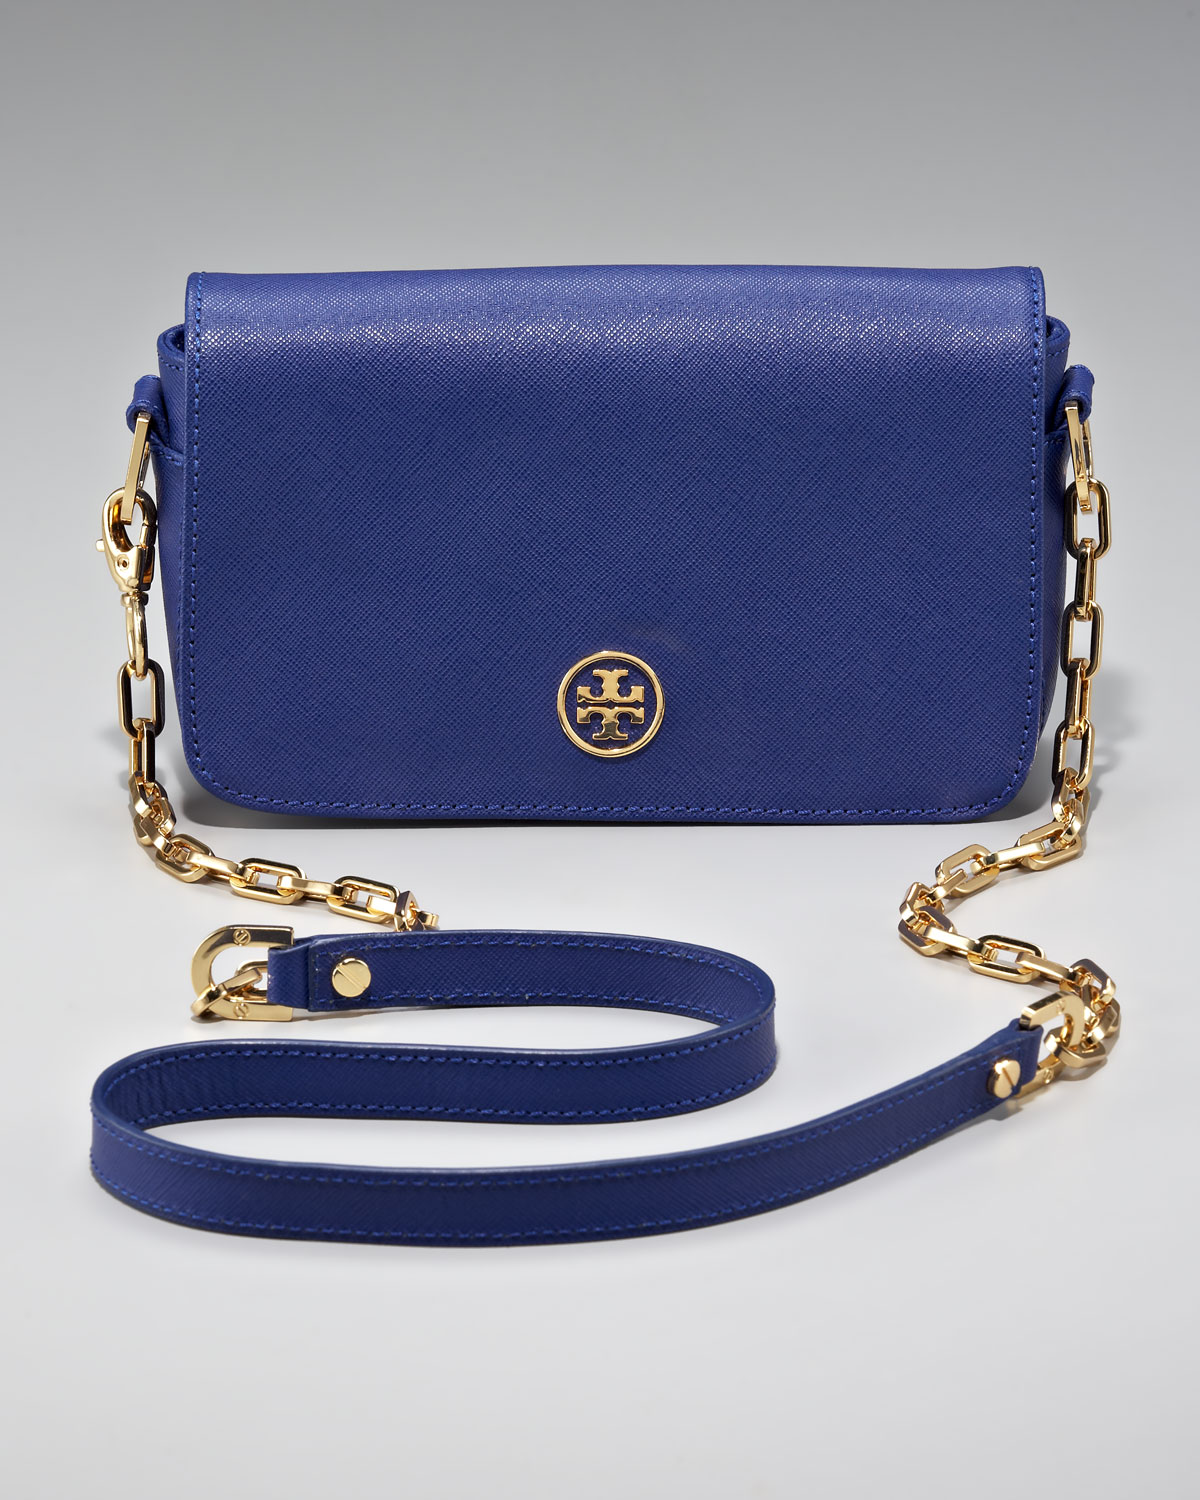 b5d4938832bd Lyst - Tory Burch Robinson Chain Bag Mini in Blue